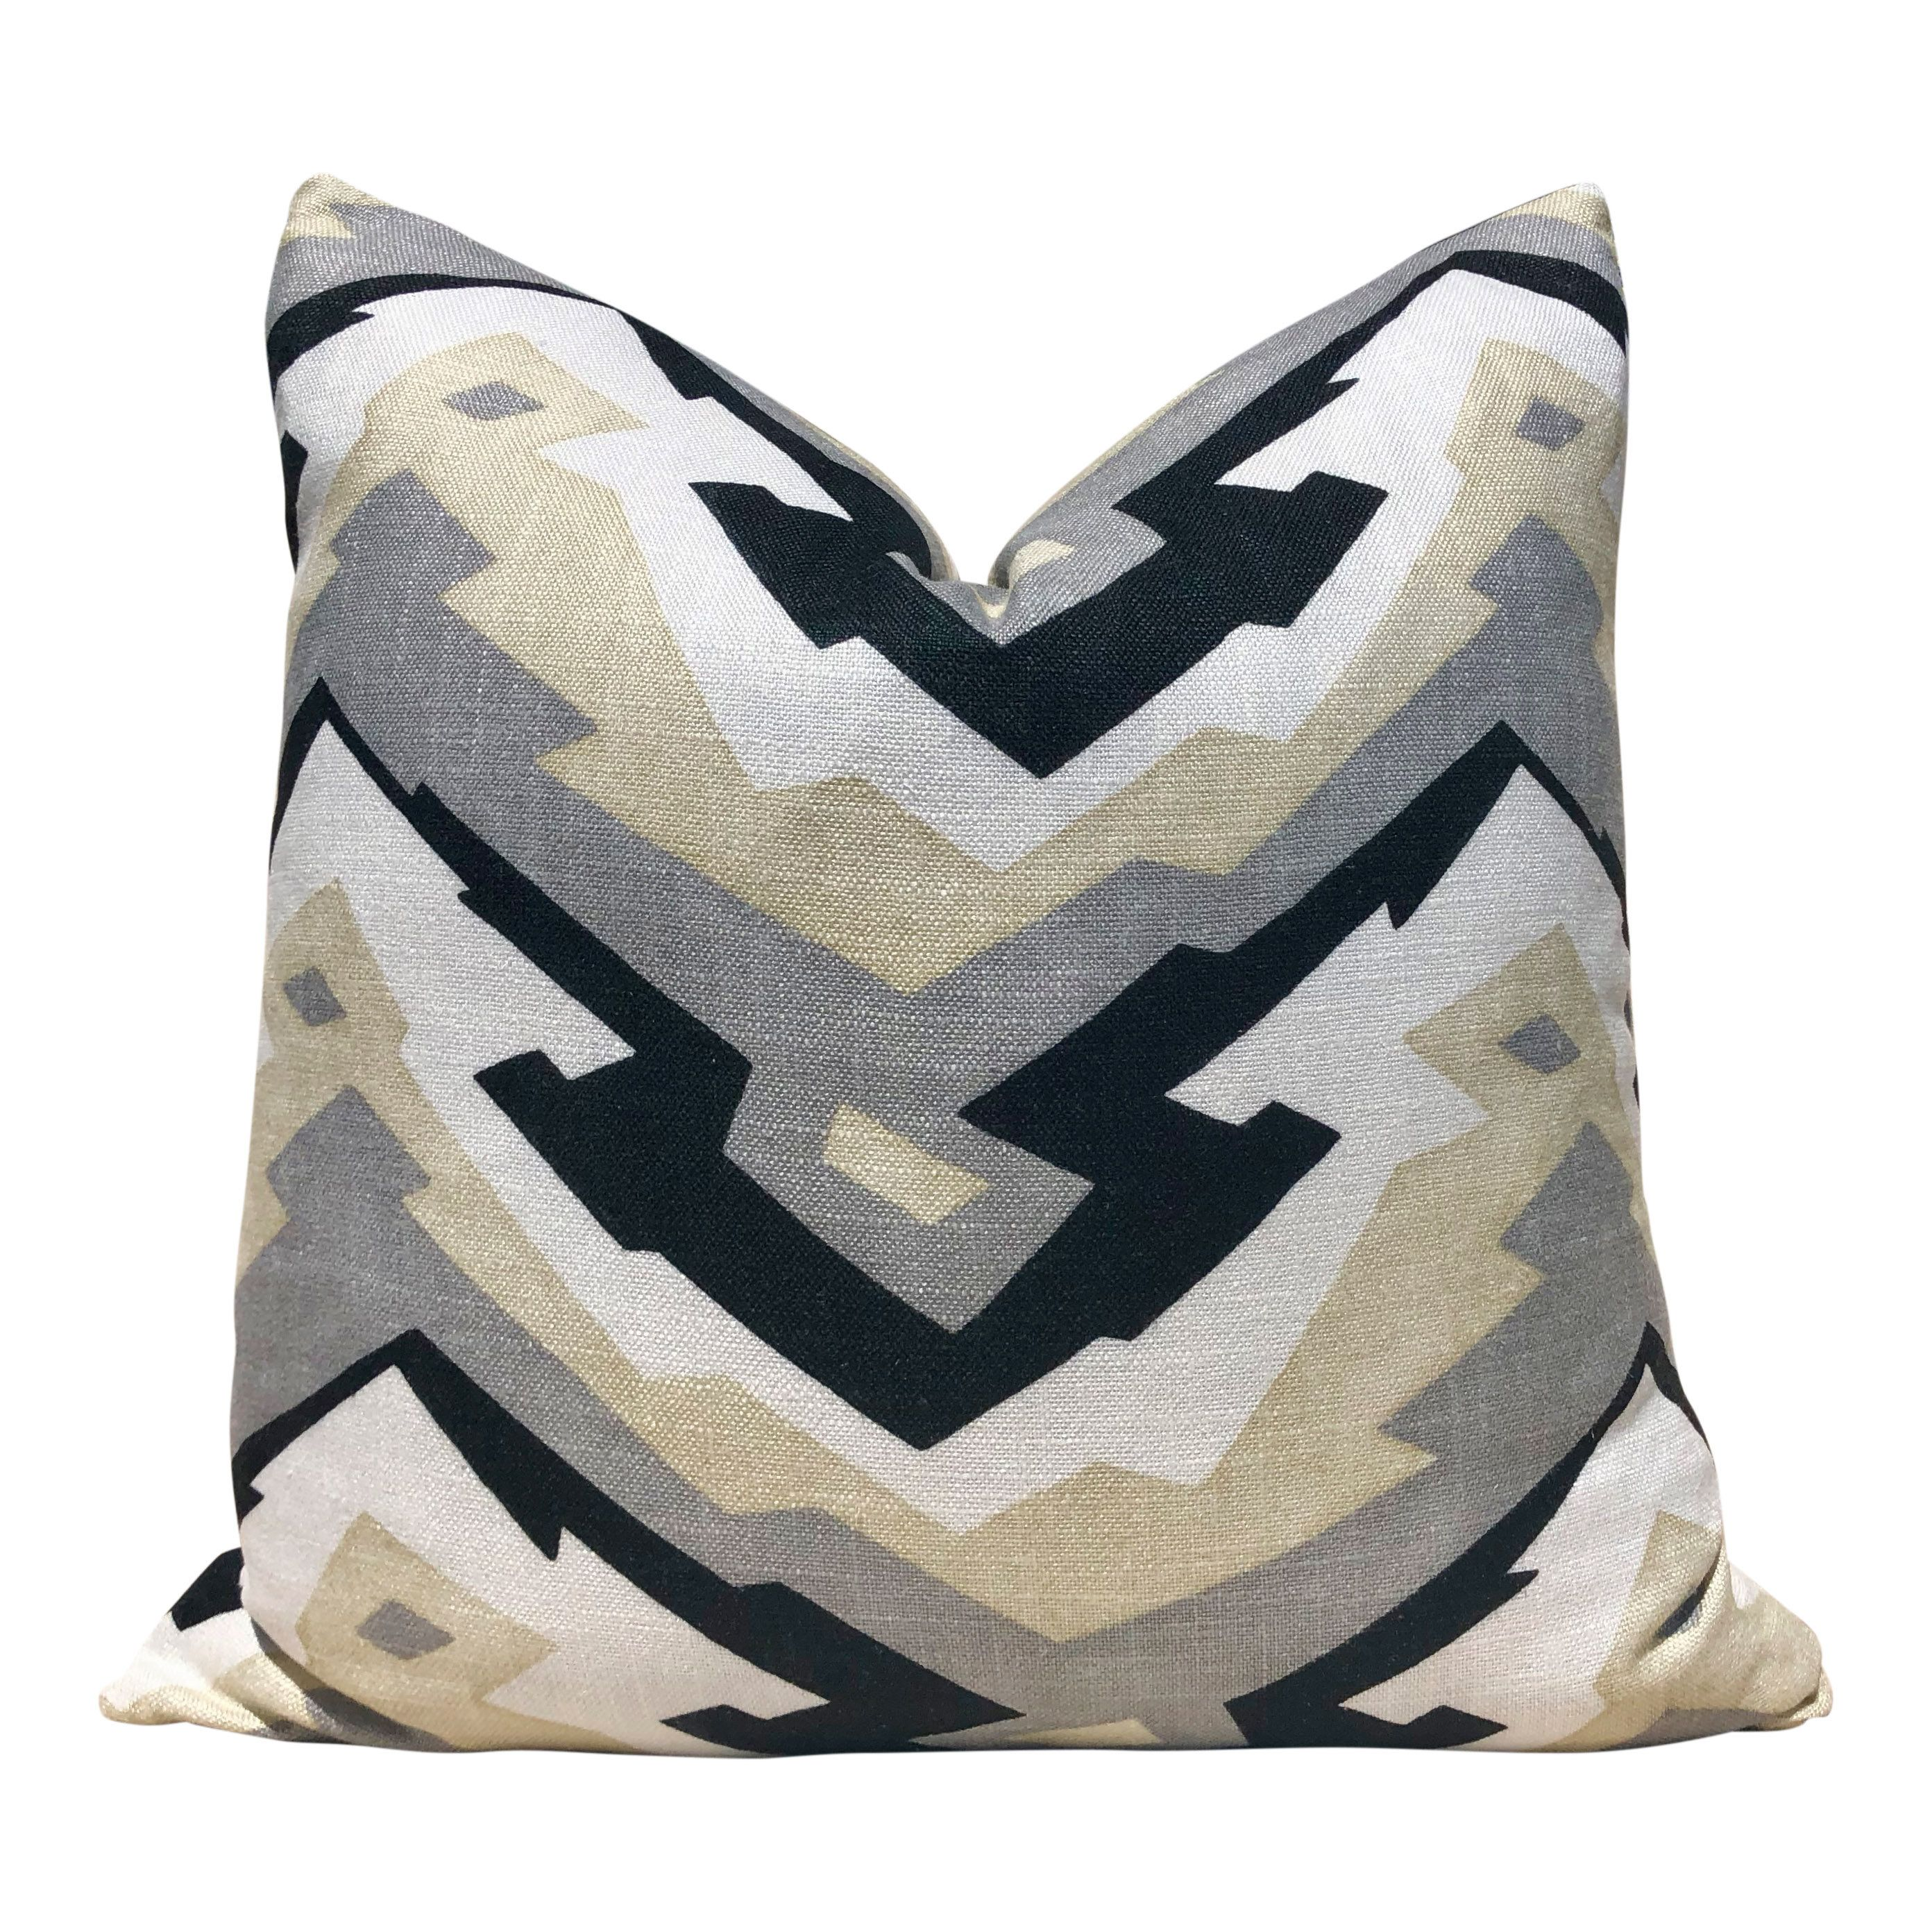 310 Best Decorative Handmade Pillow Covers By Pillowfever Ideas Handmade Pillow Covers Pillow Covers Pillows